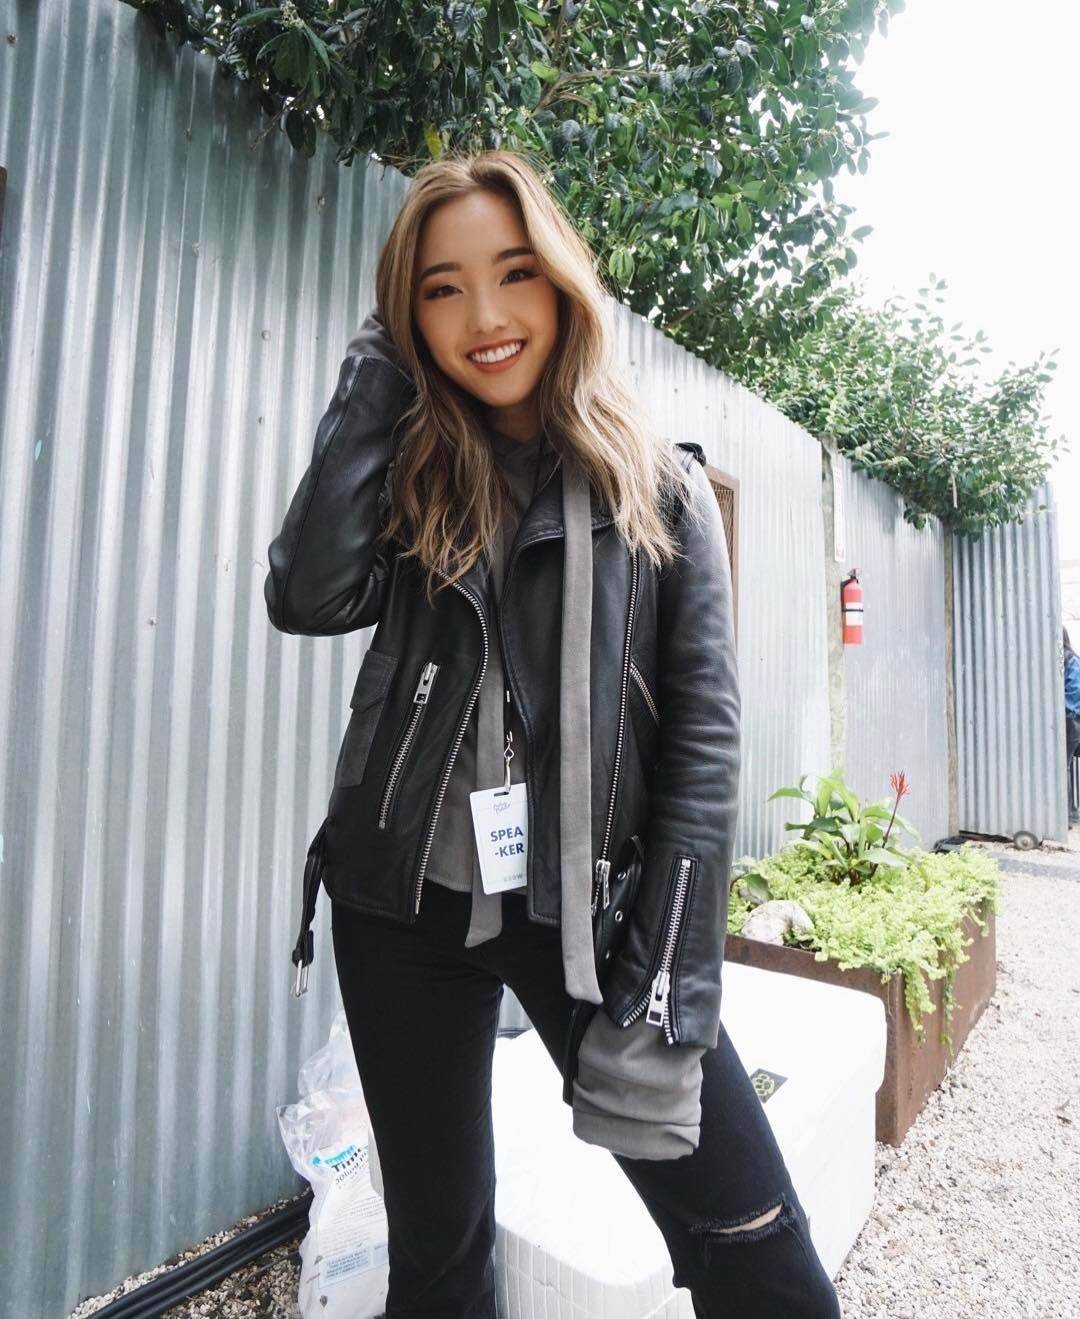 84.7k Likes, 219 Comments - Jenn Im 임도희 (@imjennim) on Instagram